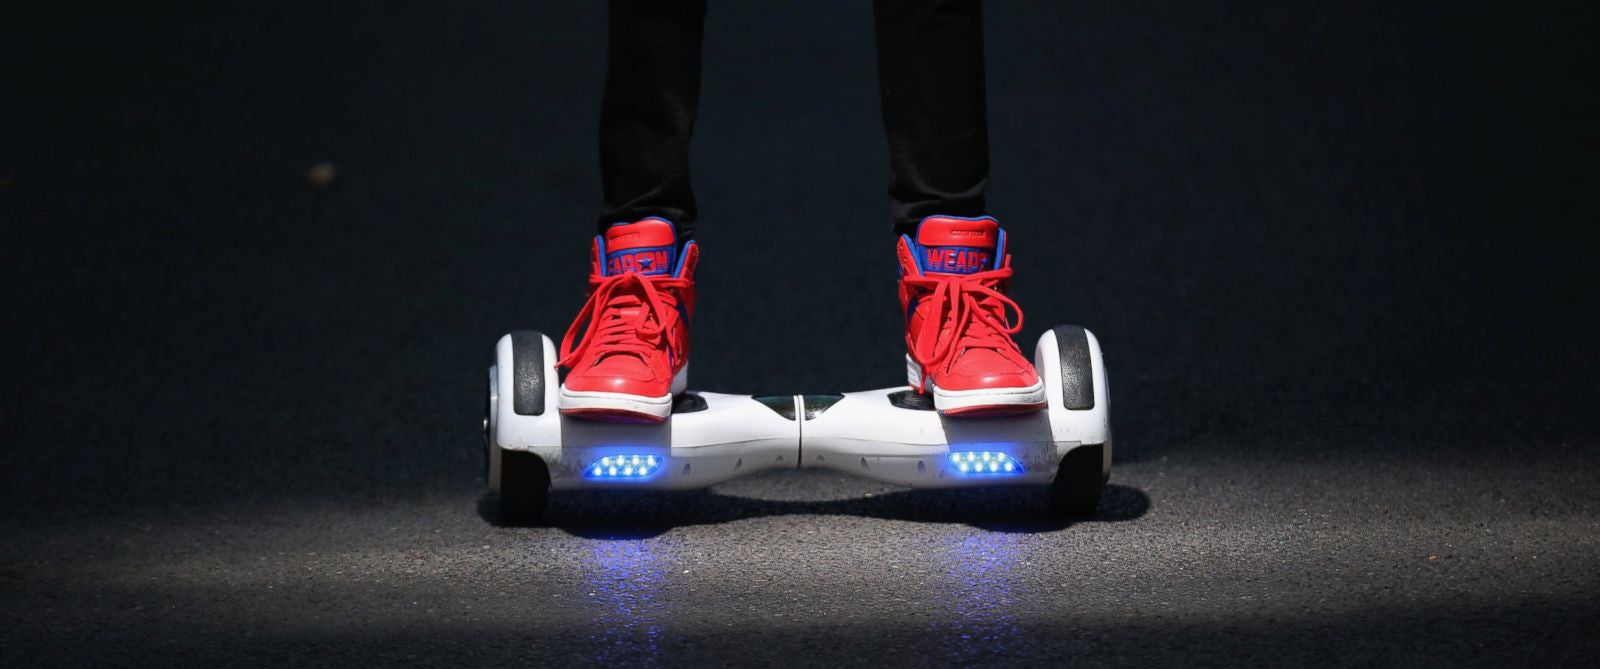 Real Working Hoverboard